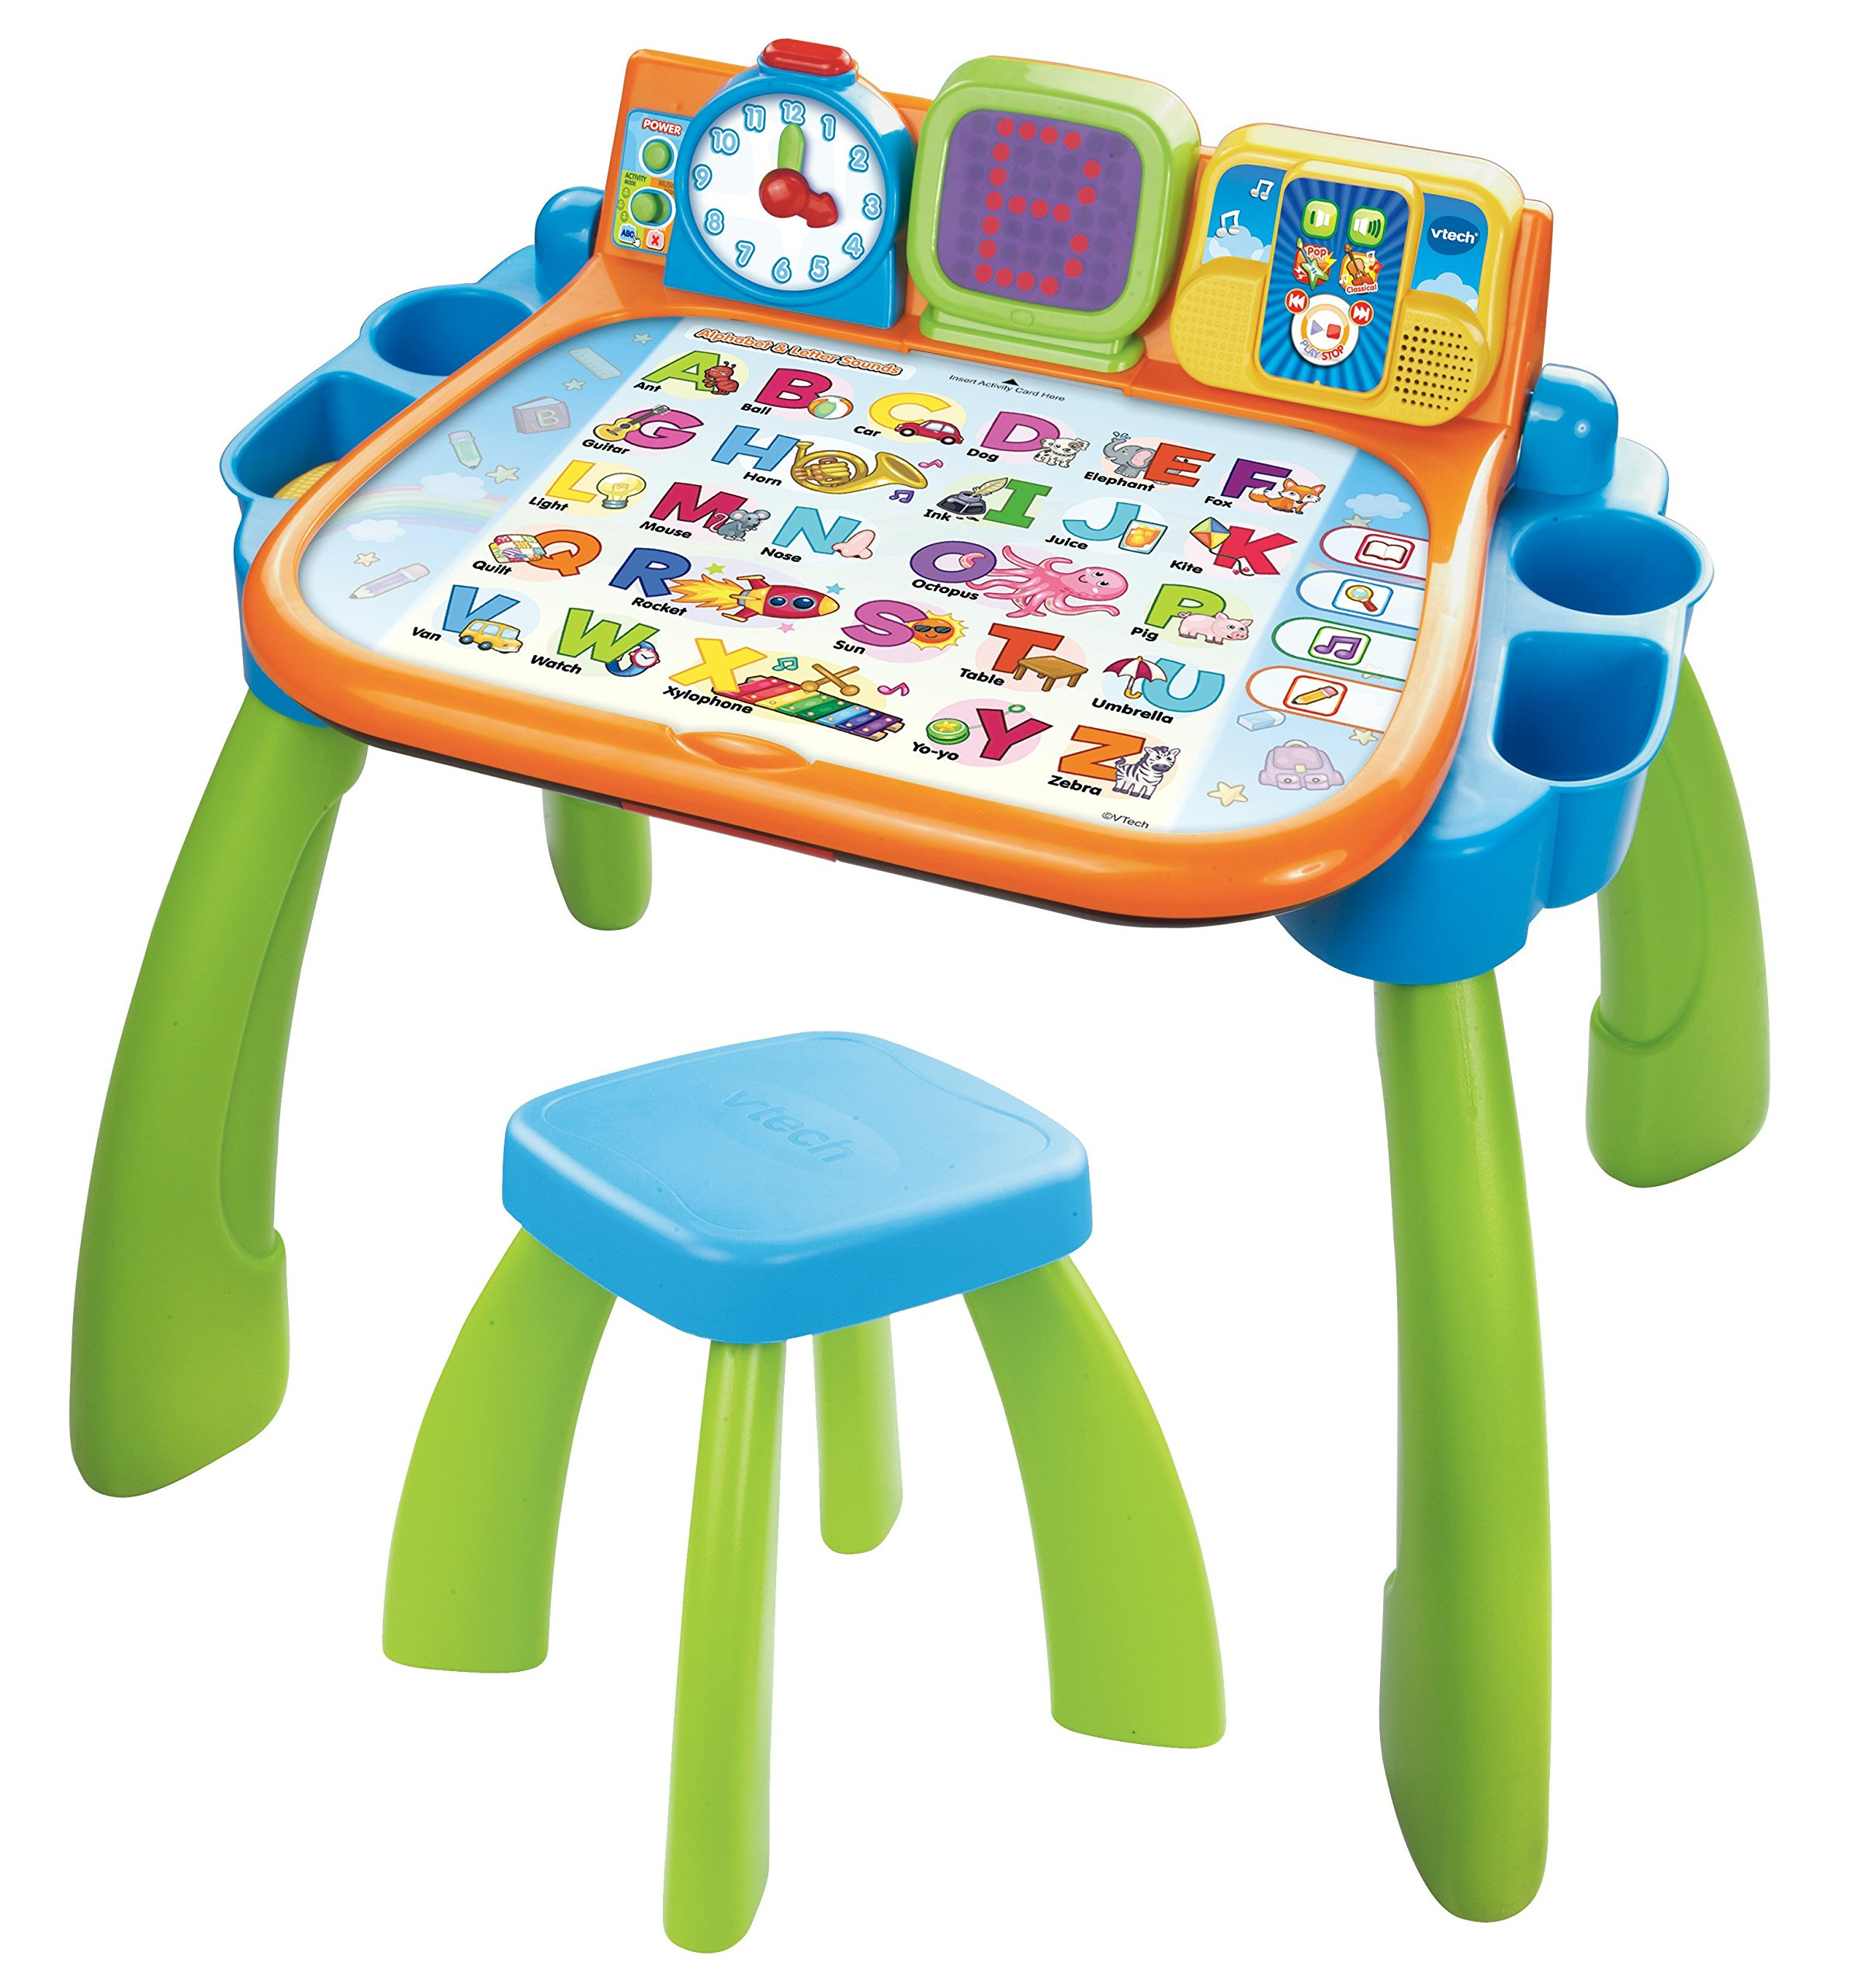 VTech Touch and Learn Activity Desk (Frustration Free Packaging), Green by VTech